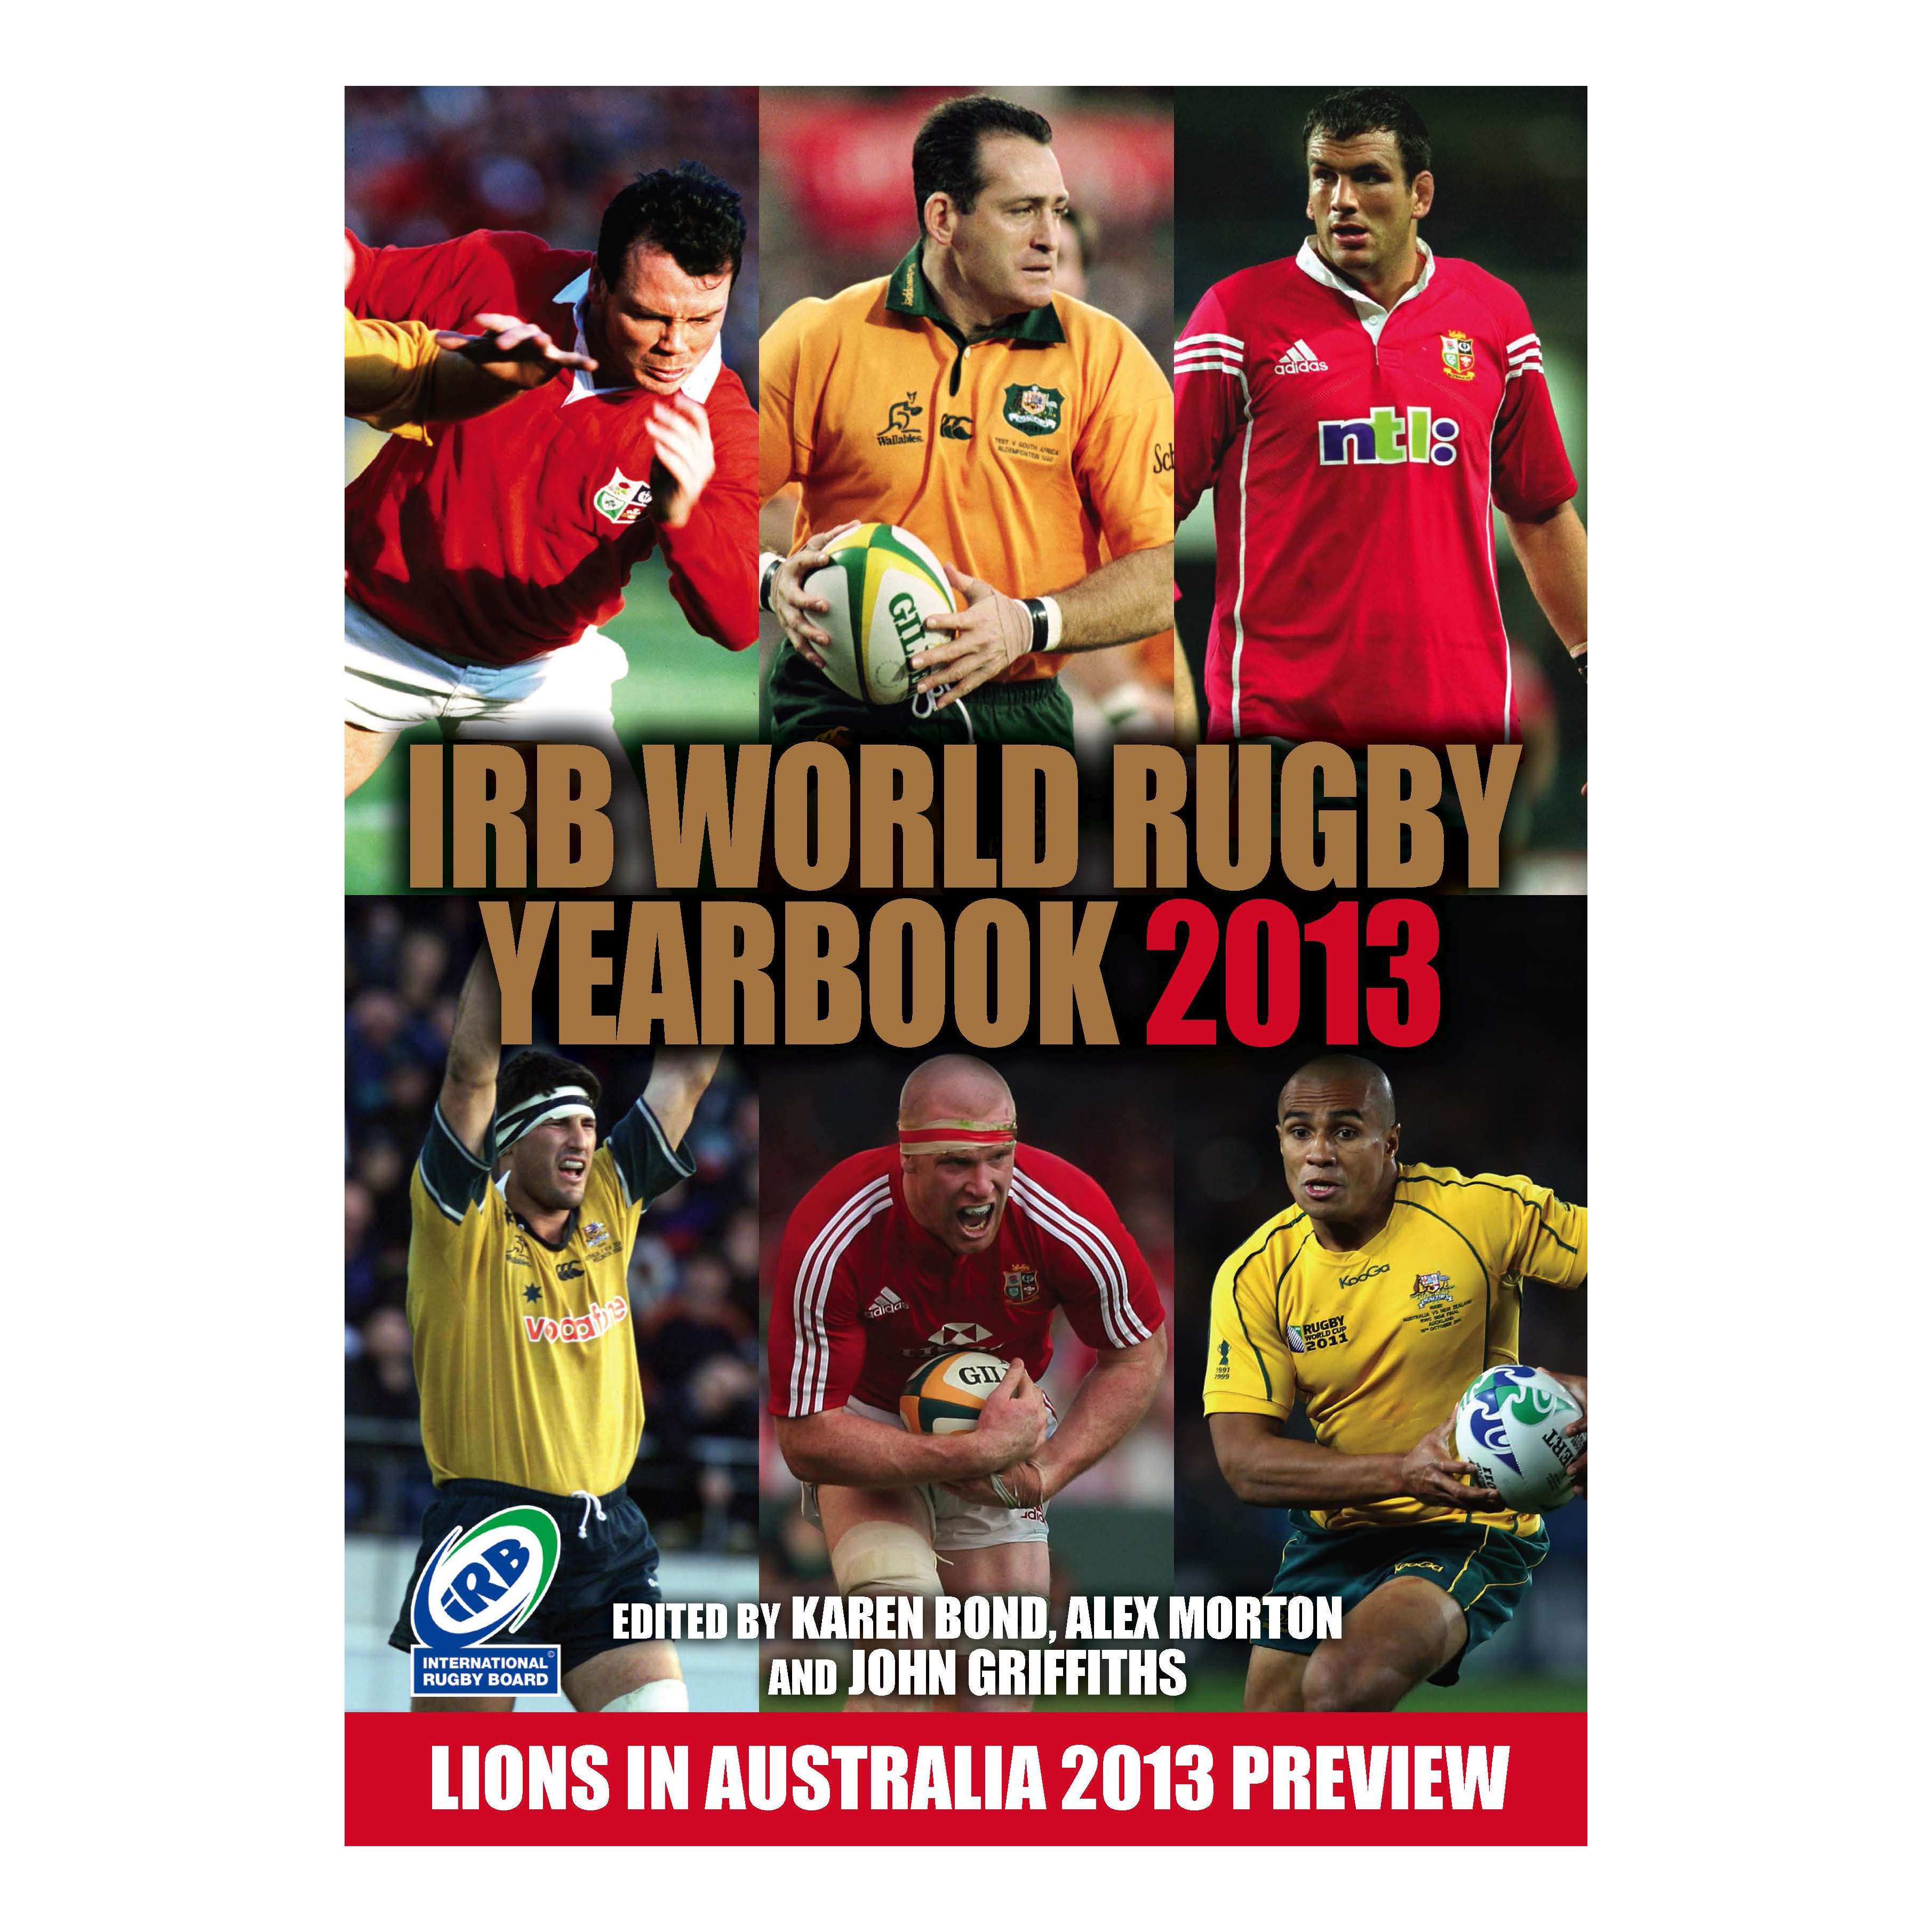 The IRB World Rugby Yearbook 2013